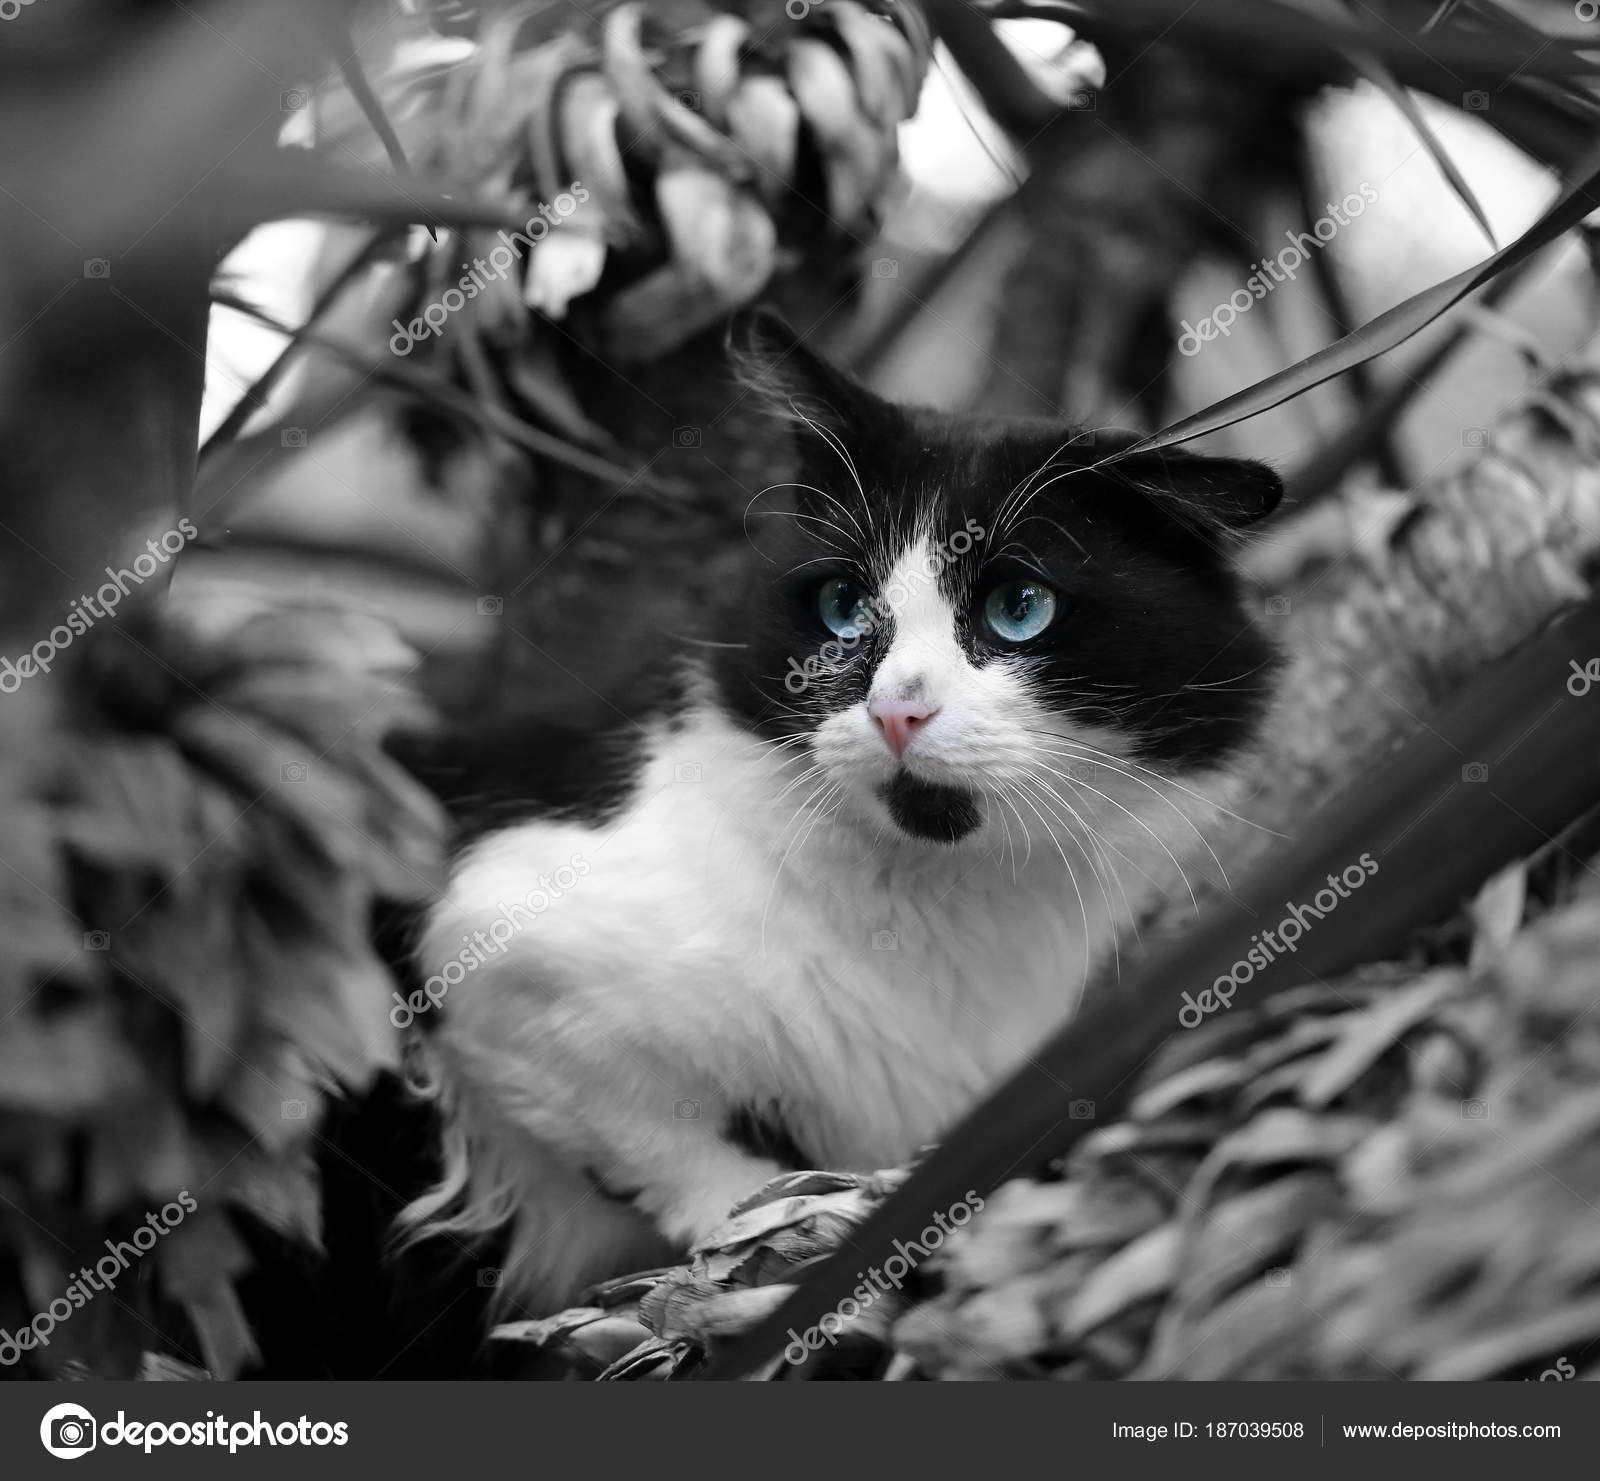 Black And White Cat Wallpaper Beautiful Black And White Cat